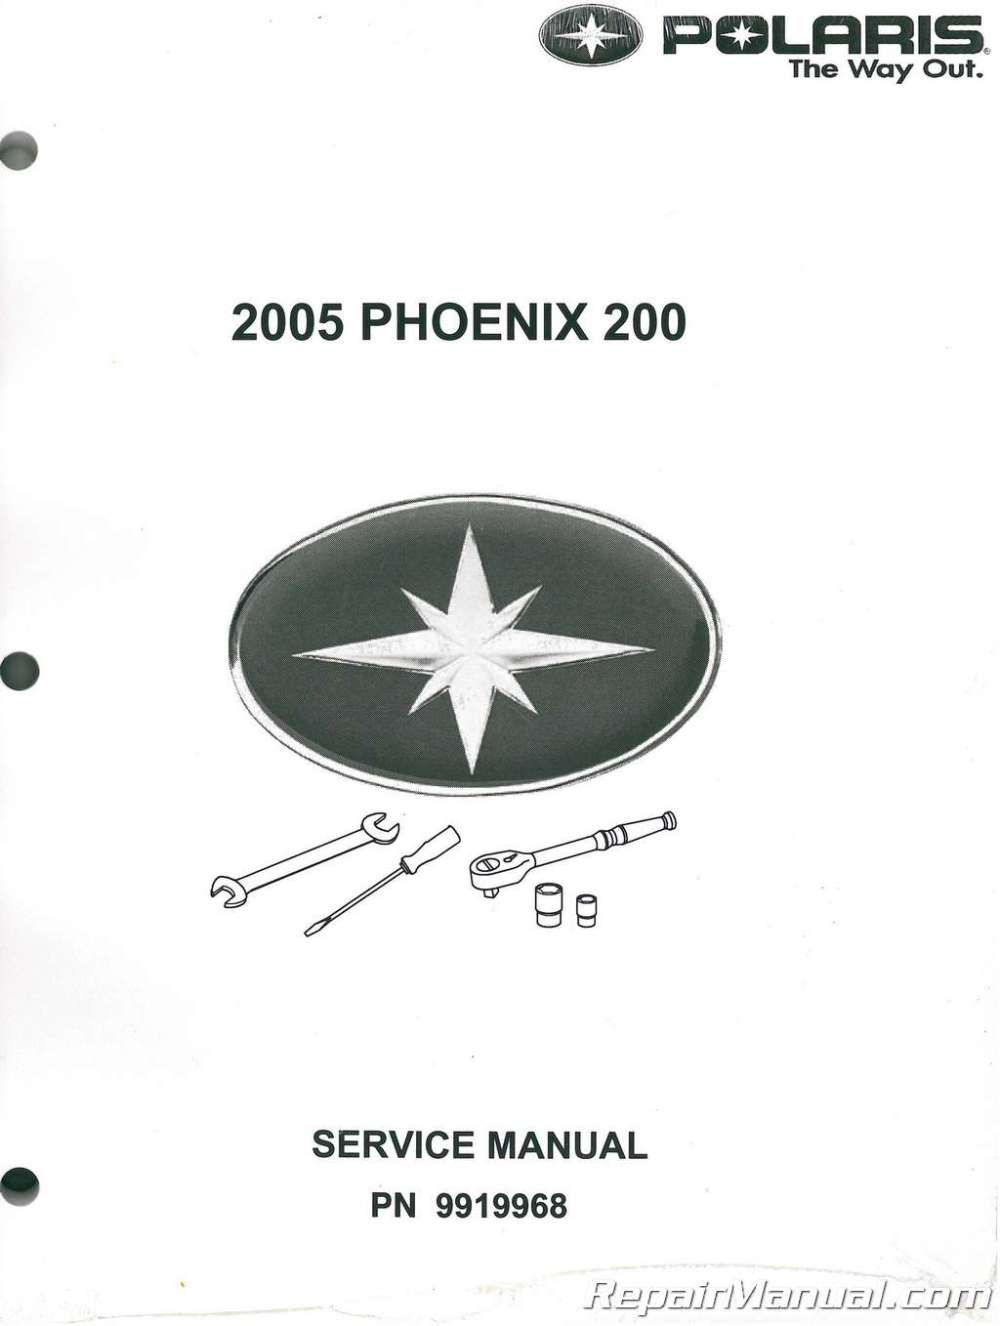 medium resolution of 2005 polaris phoenix 200 atv service manual 001 1